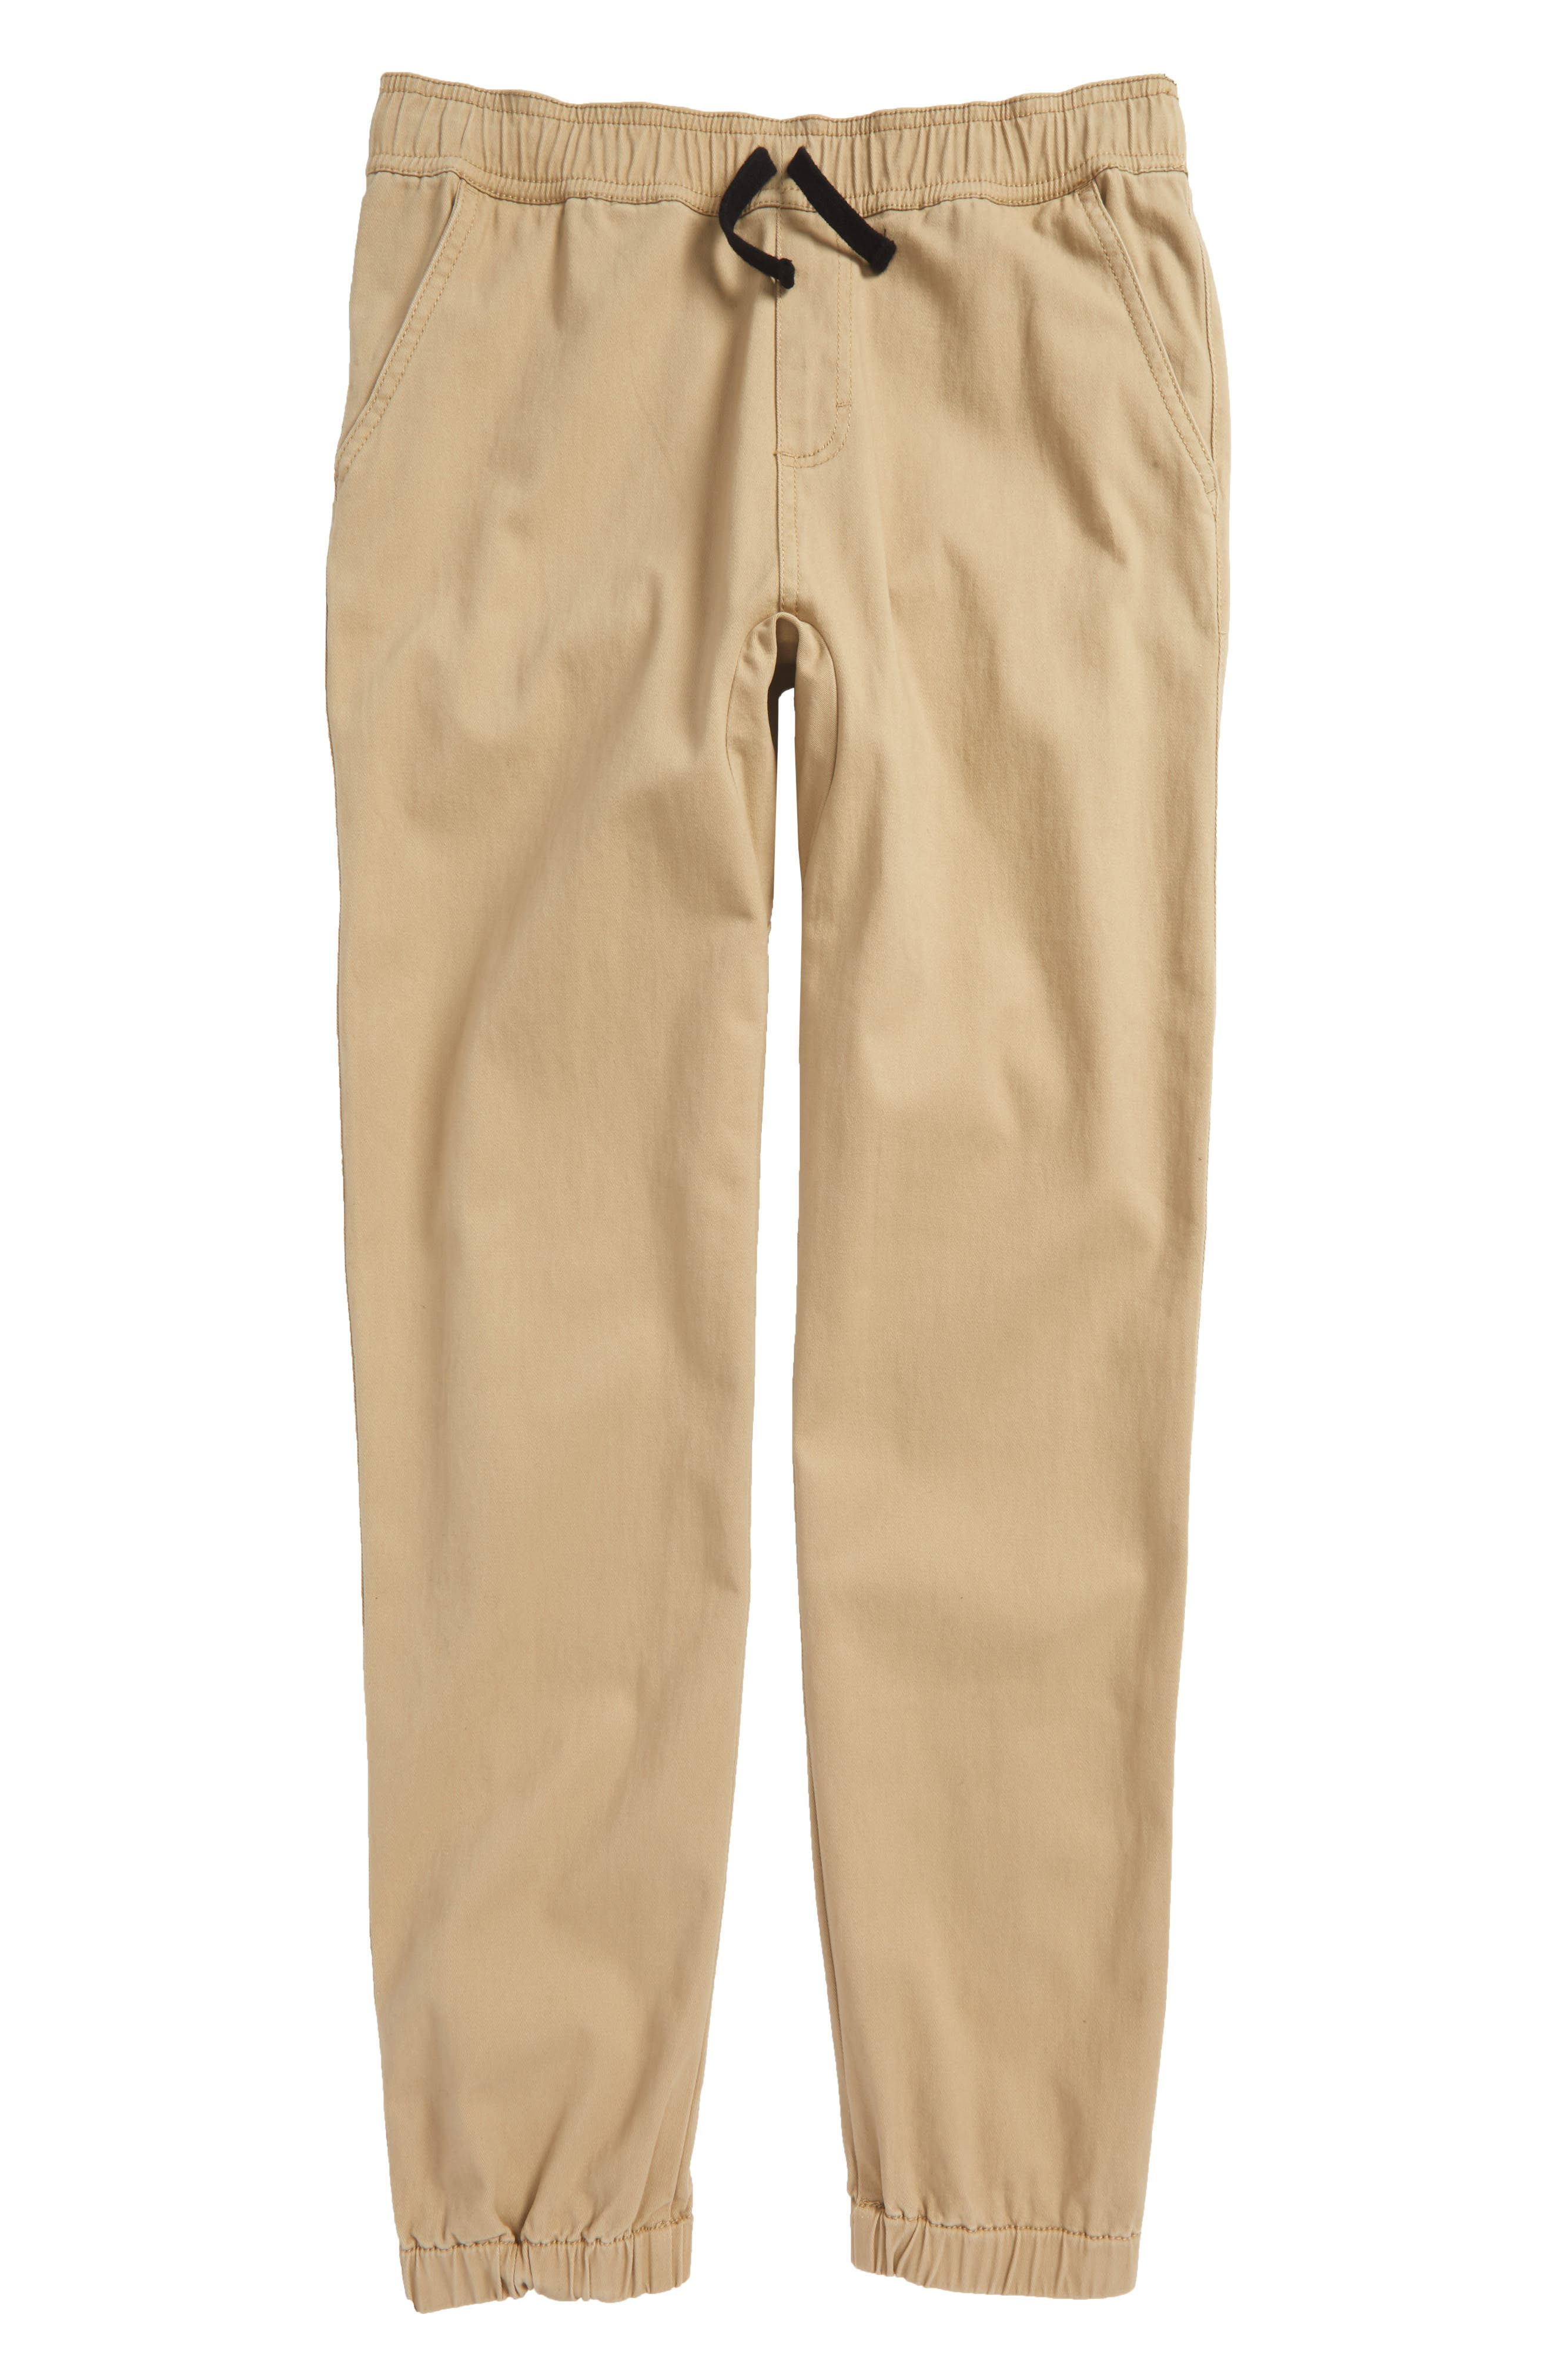 Woven Jogger Pants,                         Main,                         color, Tan Stock